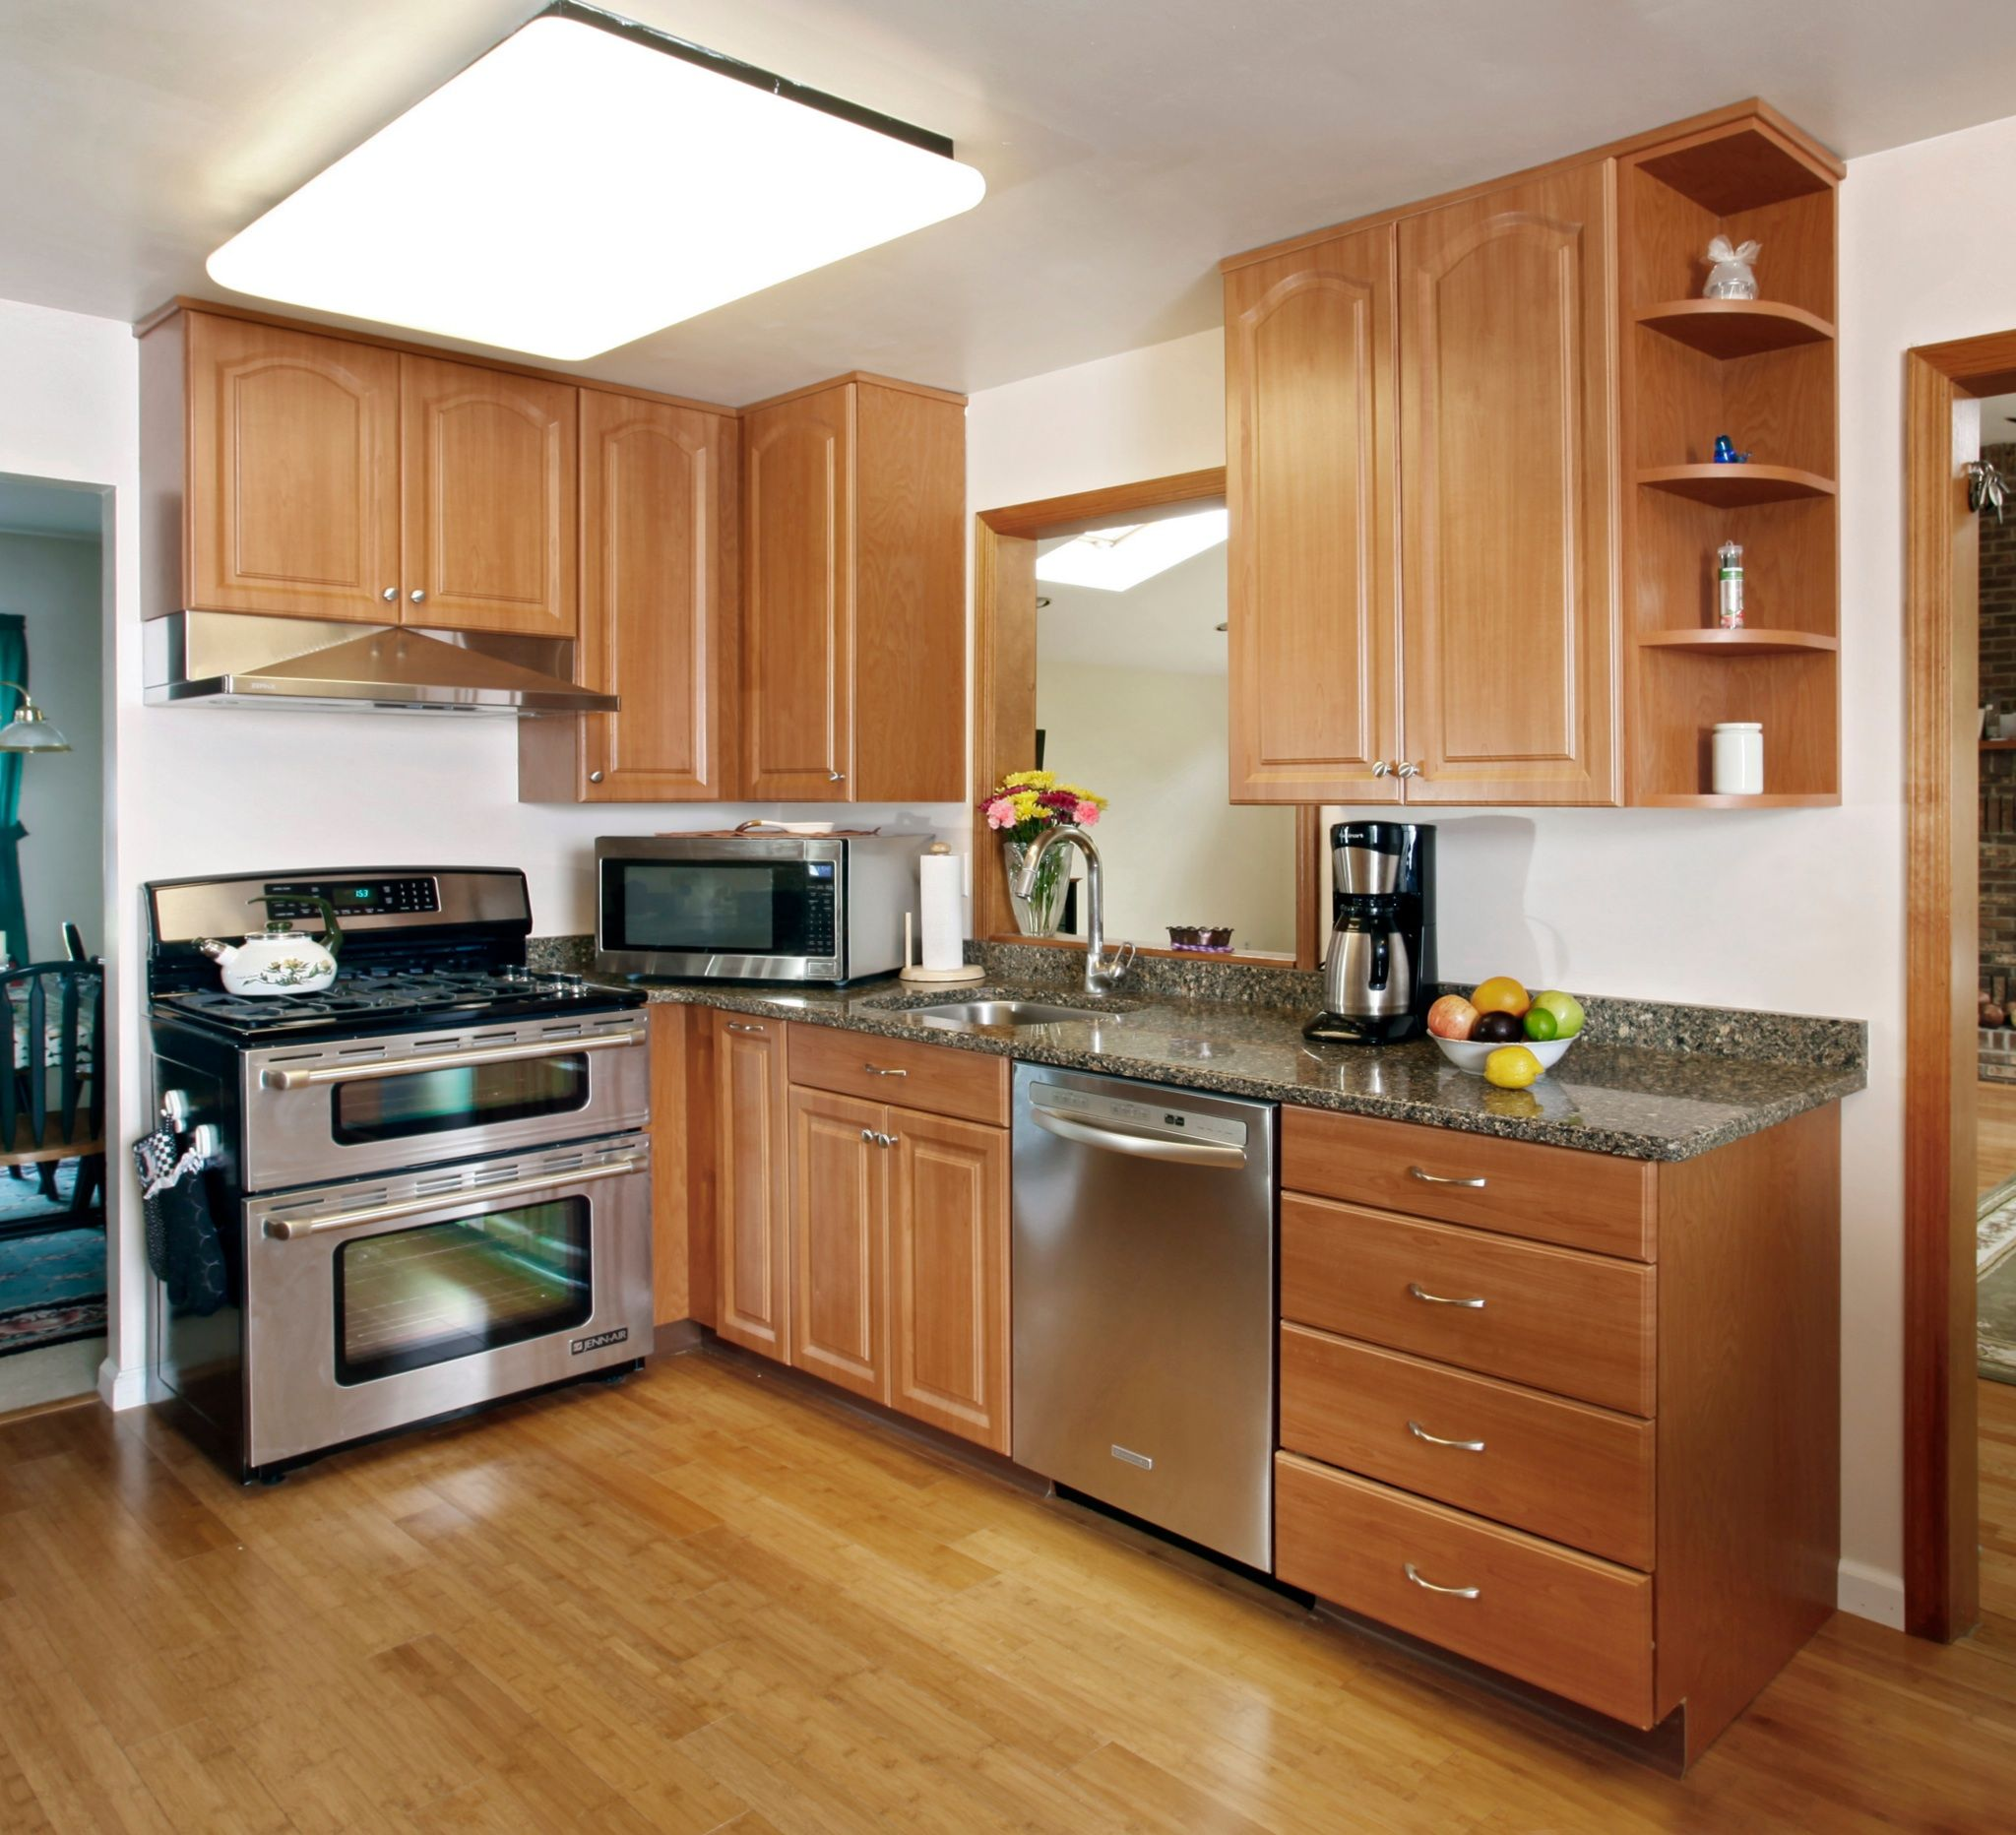 Pictures Of Oak Kitchen Cabinets: Kitchen:Quartz Countertops With Oak Cabinets Kitchen With